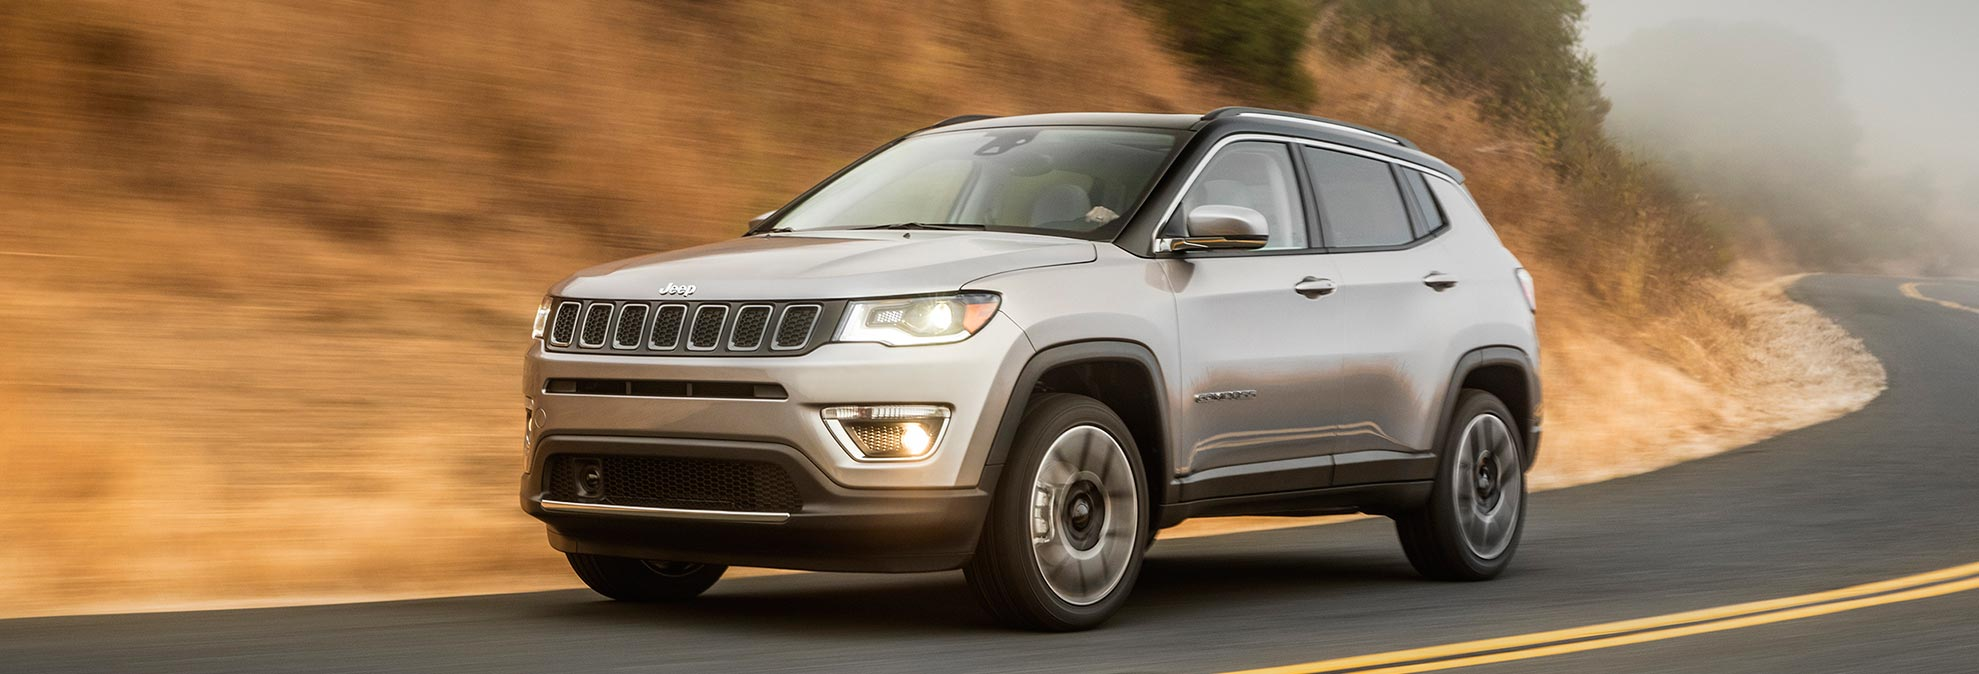 Preview: 2017 Jeep Compass